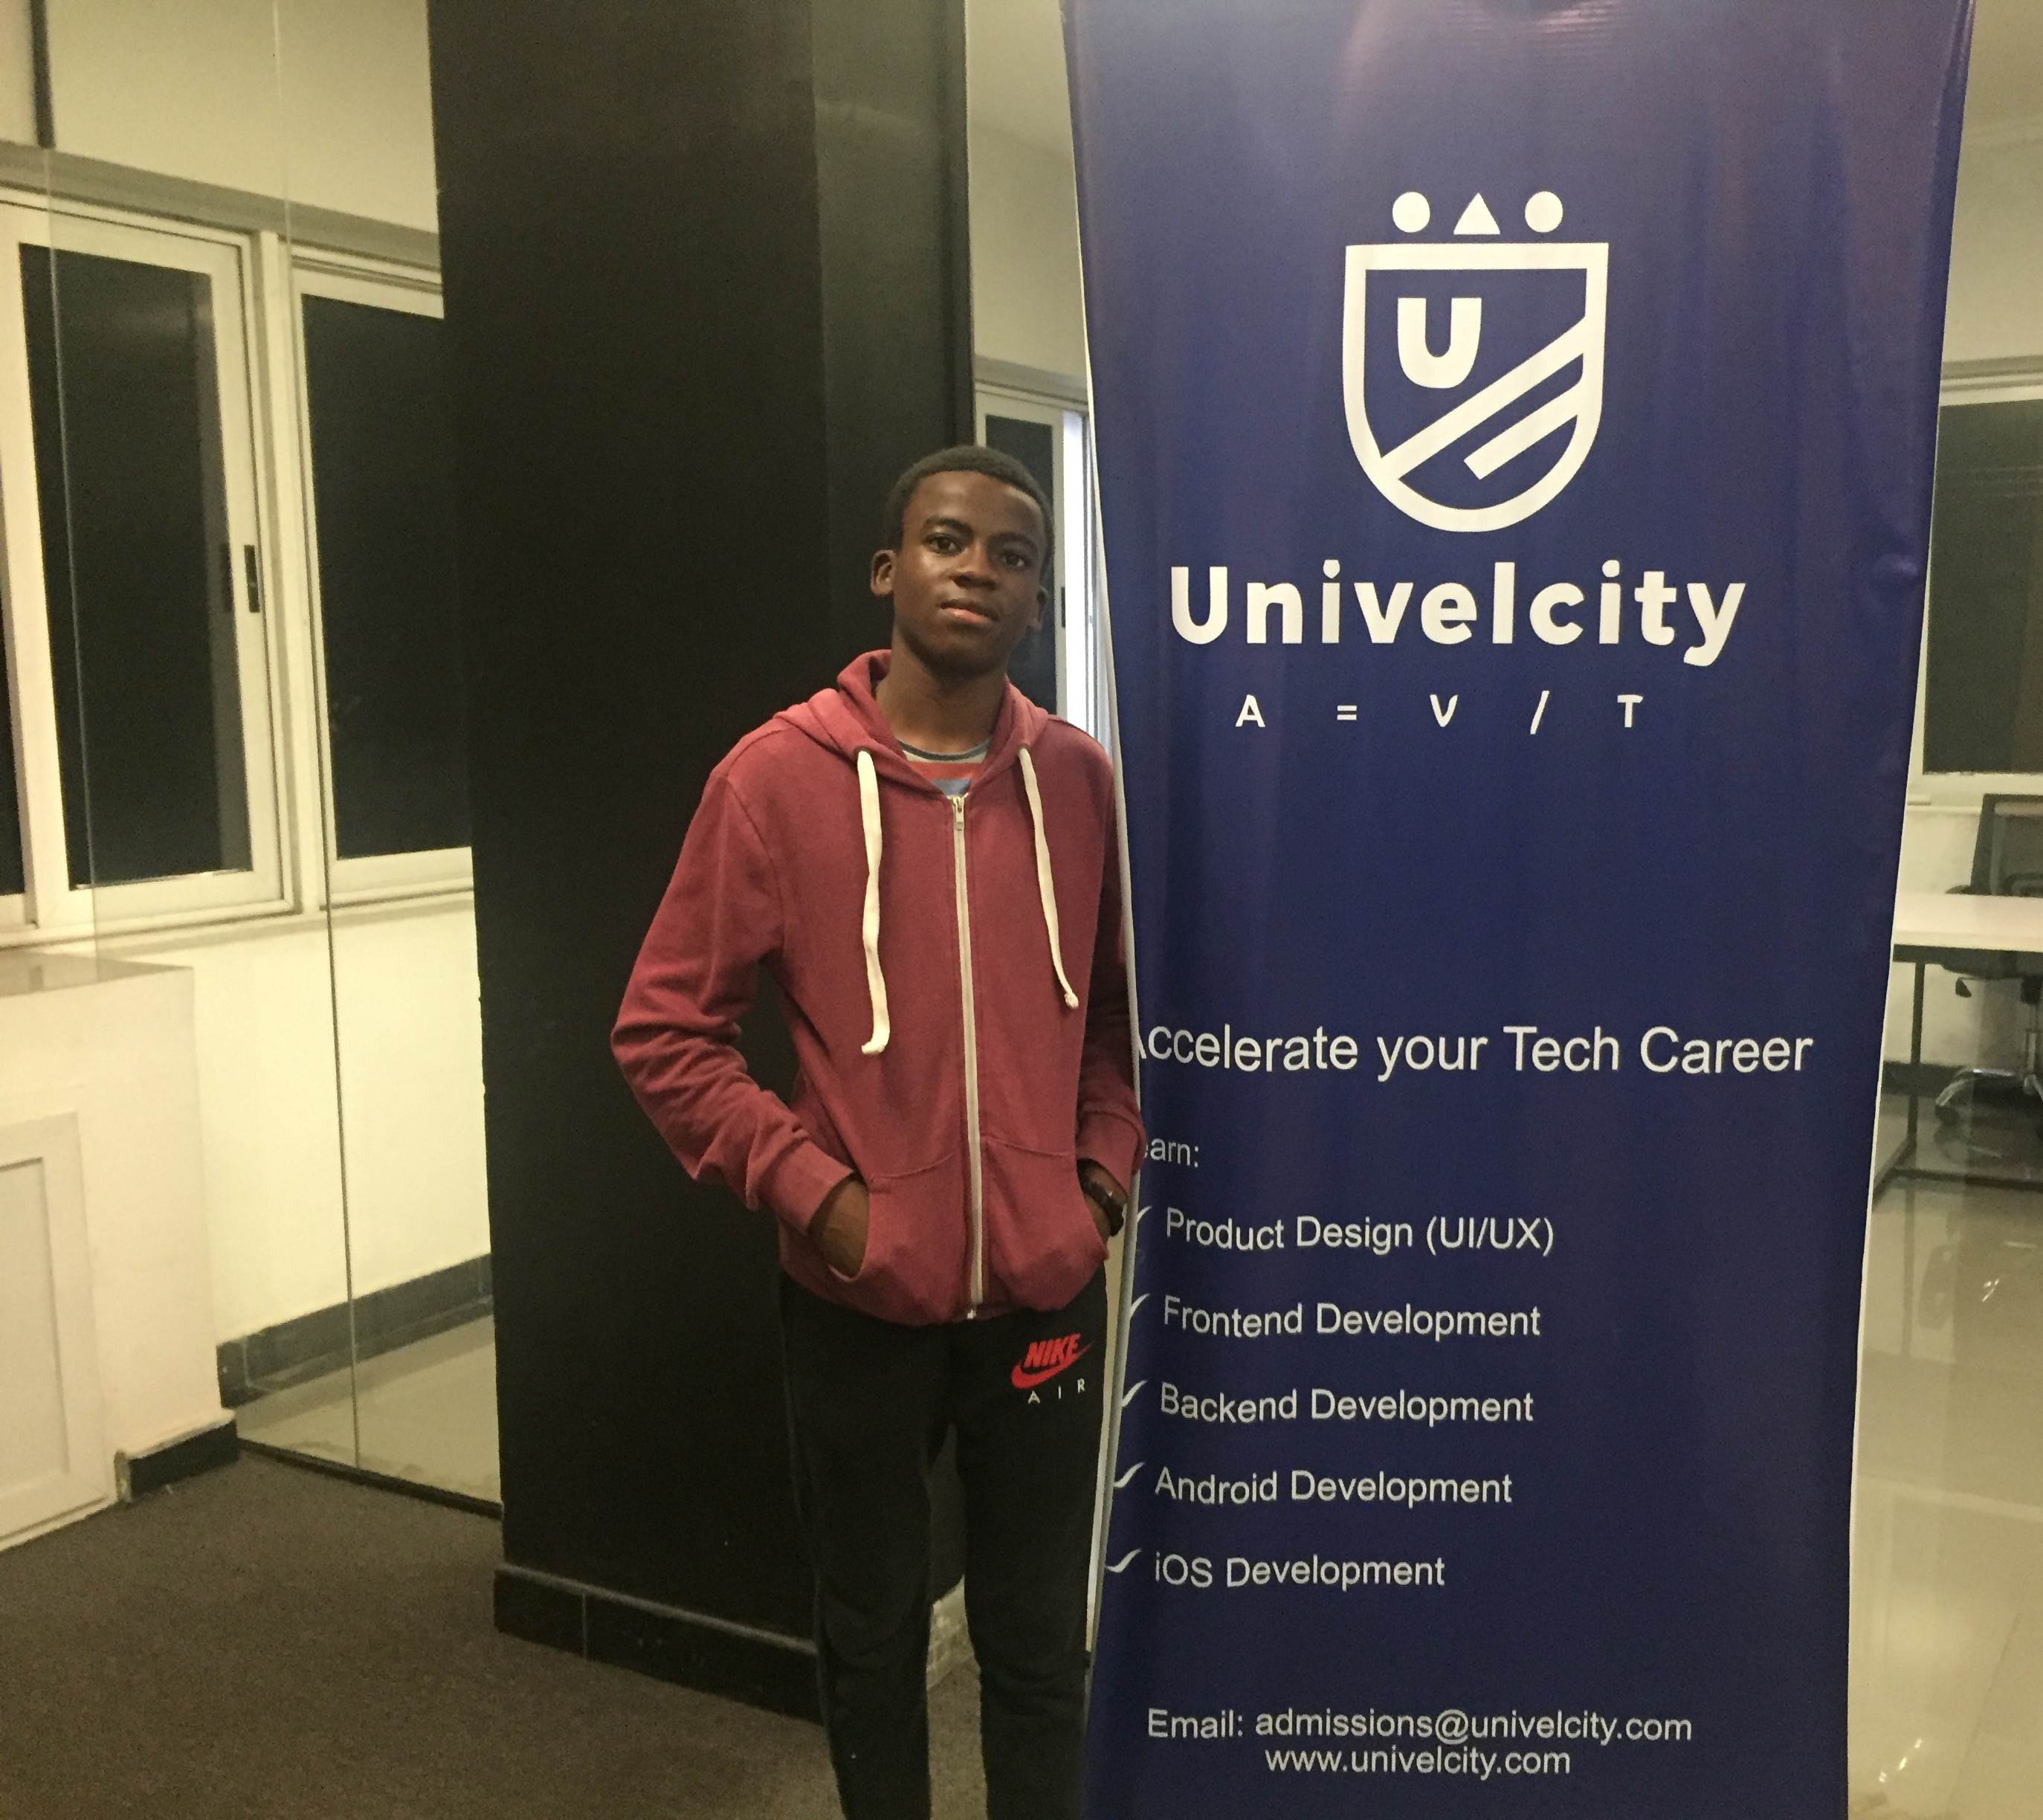 How a 17 year old Programmer became a Front-End Engineer at a leading IT Company